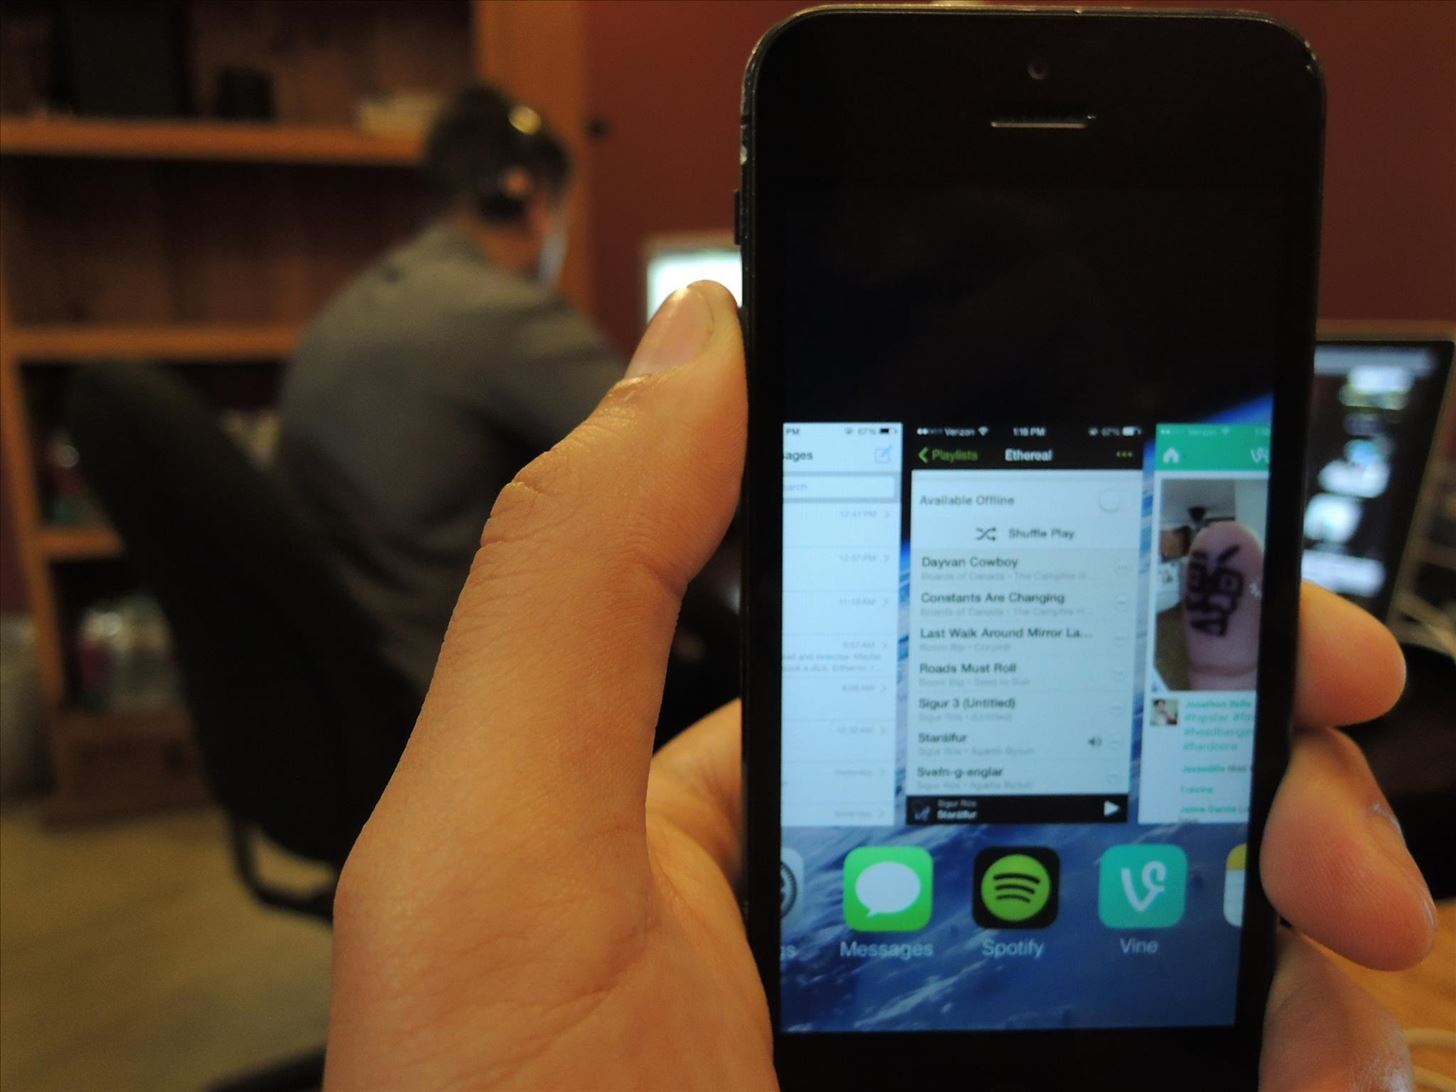 How to Take Secret Spy Photos & Videos in iOS 7 Using Your iPhone 5's Camera App